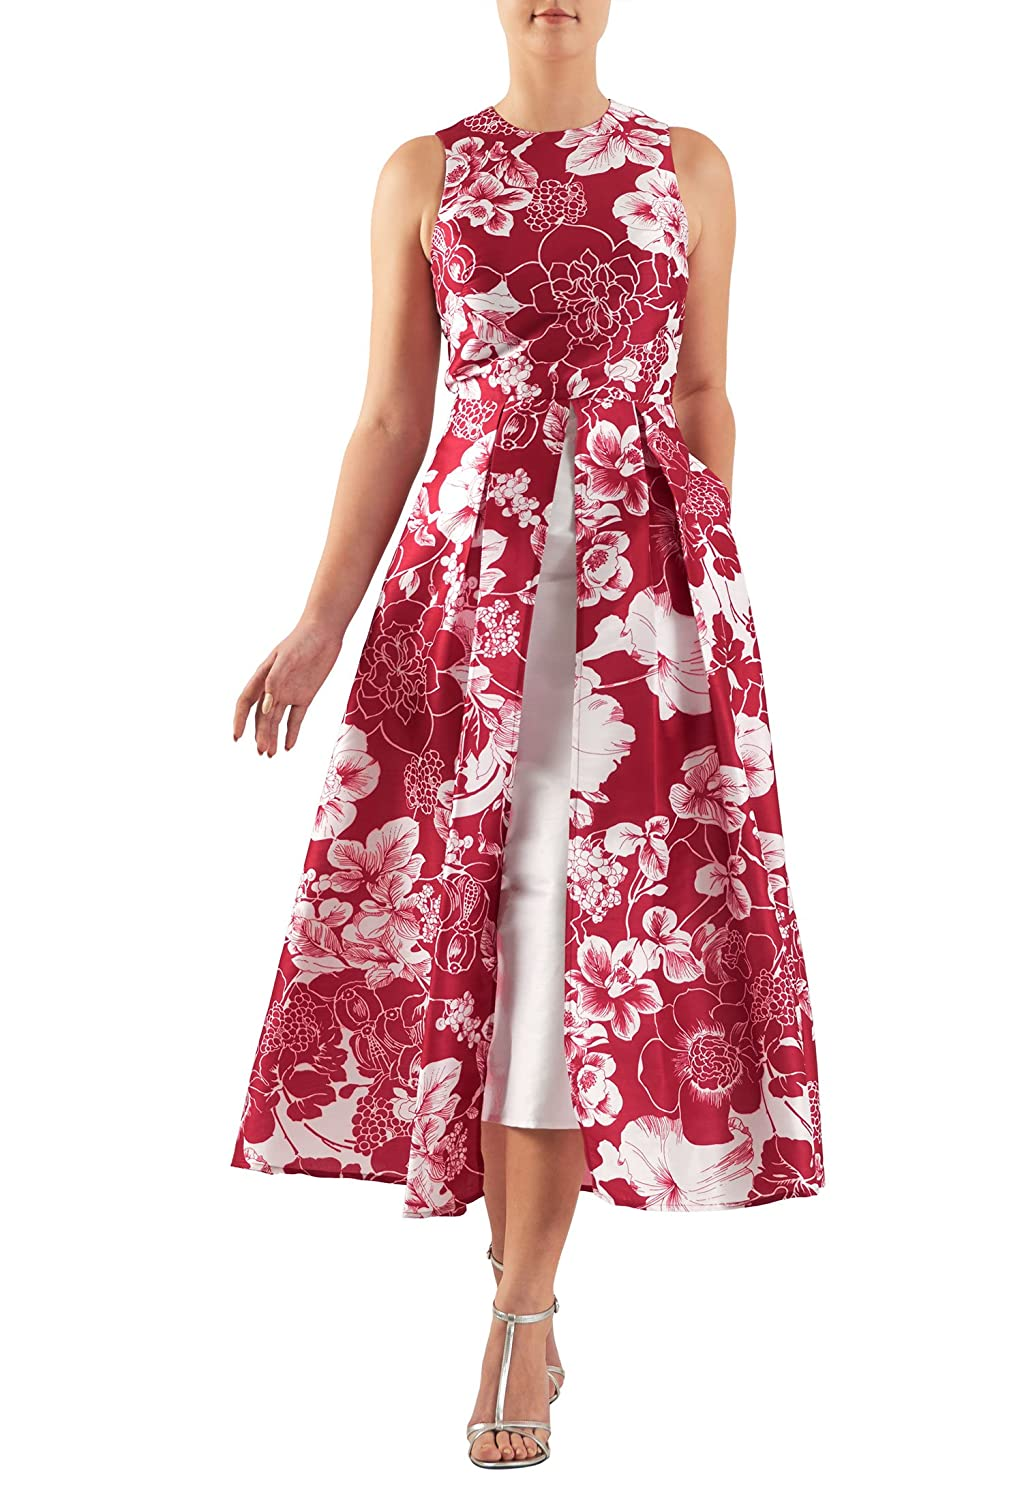 1960s Plus Size Dresses & Retro Mod Fashion Hostess- Floral print dupioni inset front dress $66.95 AT vintagedancer.com